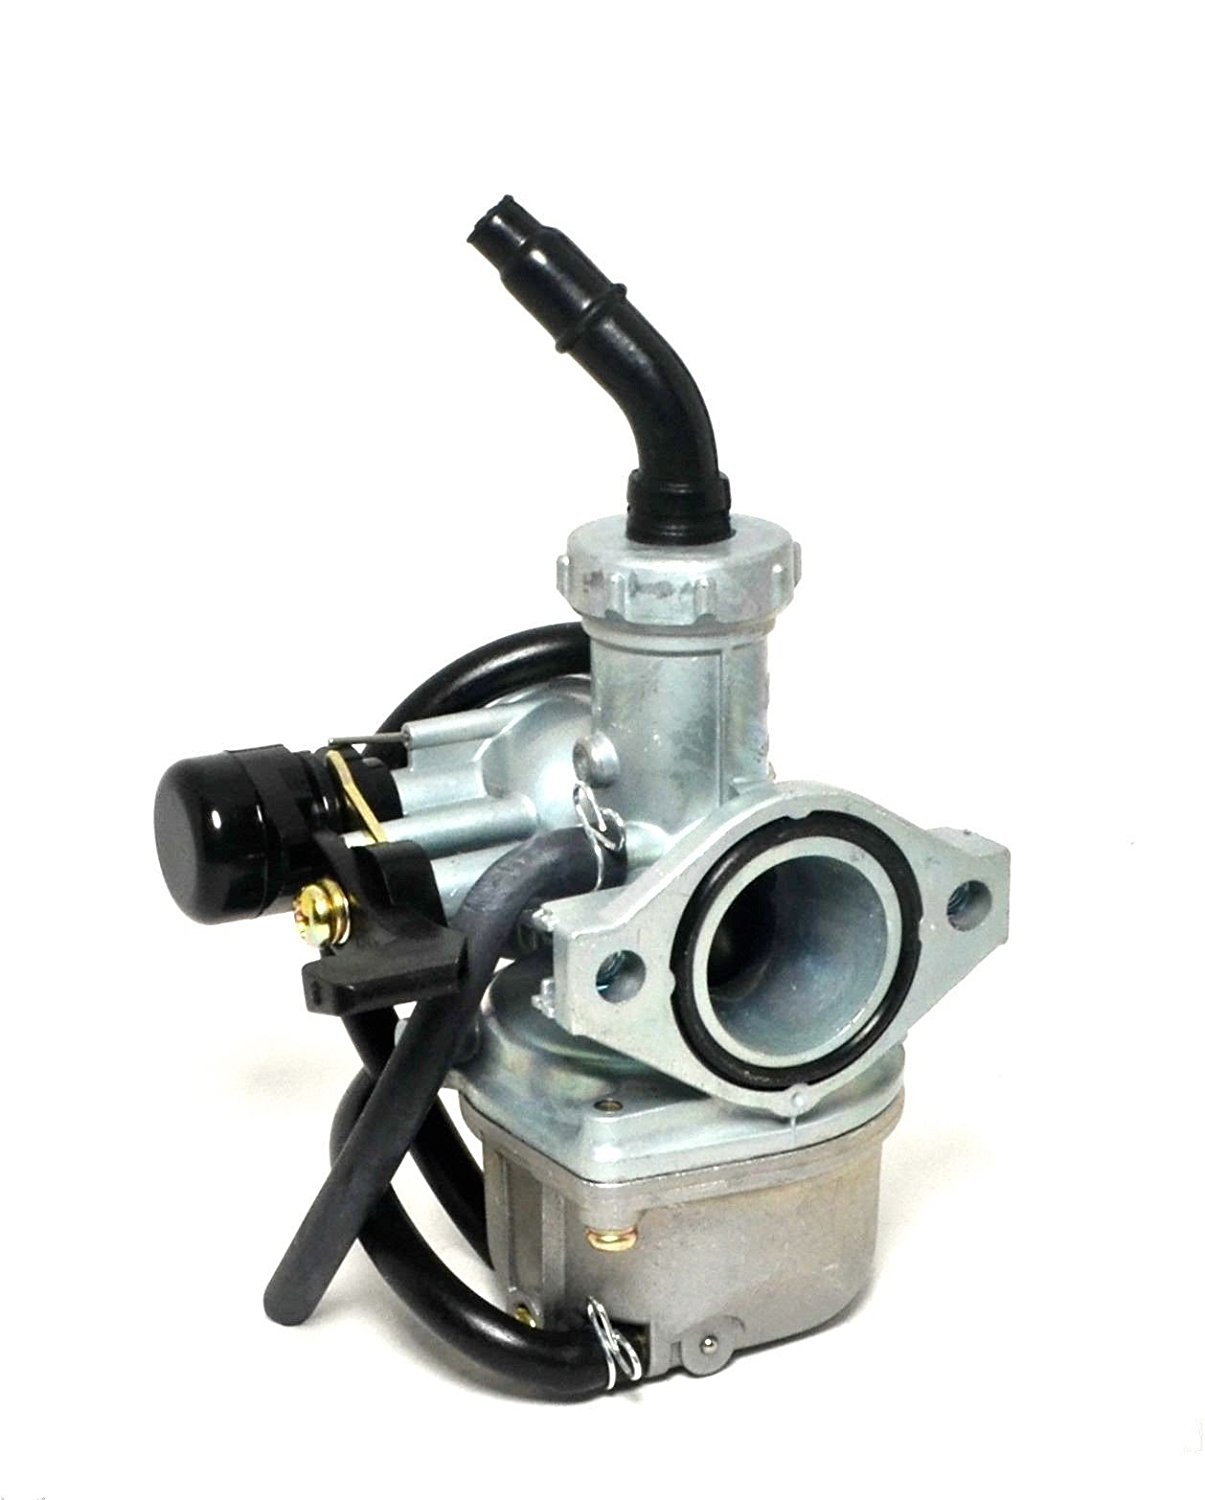 Pz22 22mm New Carburetor Hand Choke With Air Filter For 125cc Atv Dirt Bike Go Kart Honda Crf Xr Online Shop Atv,rv,boat & Other Vehicle